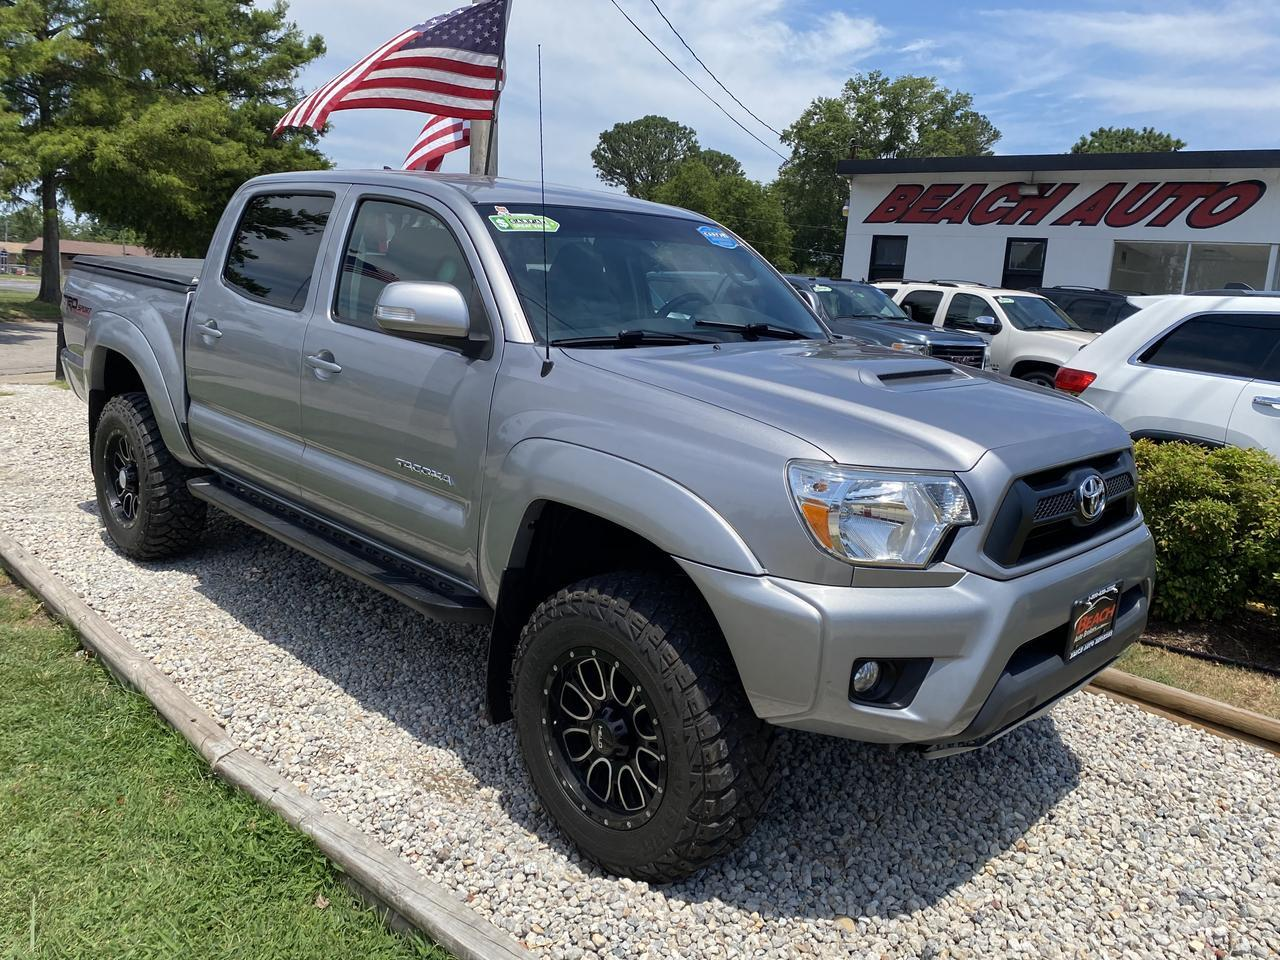 2015 TOYOTA TACOMA TRD SPORT DOUBLE CAB 4X4, WARRANTY, LIFTED, BLUETOOTH, BACKUP CAM, 1 OWNER, LOW MILES! Norfolk VA